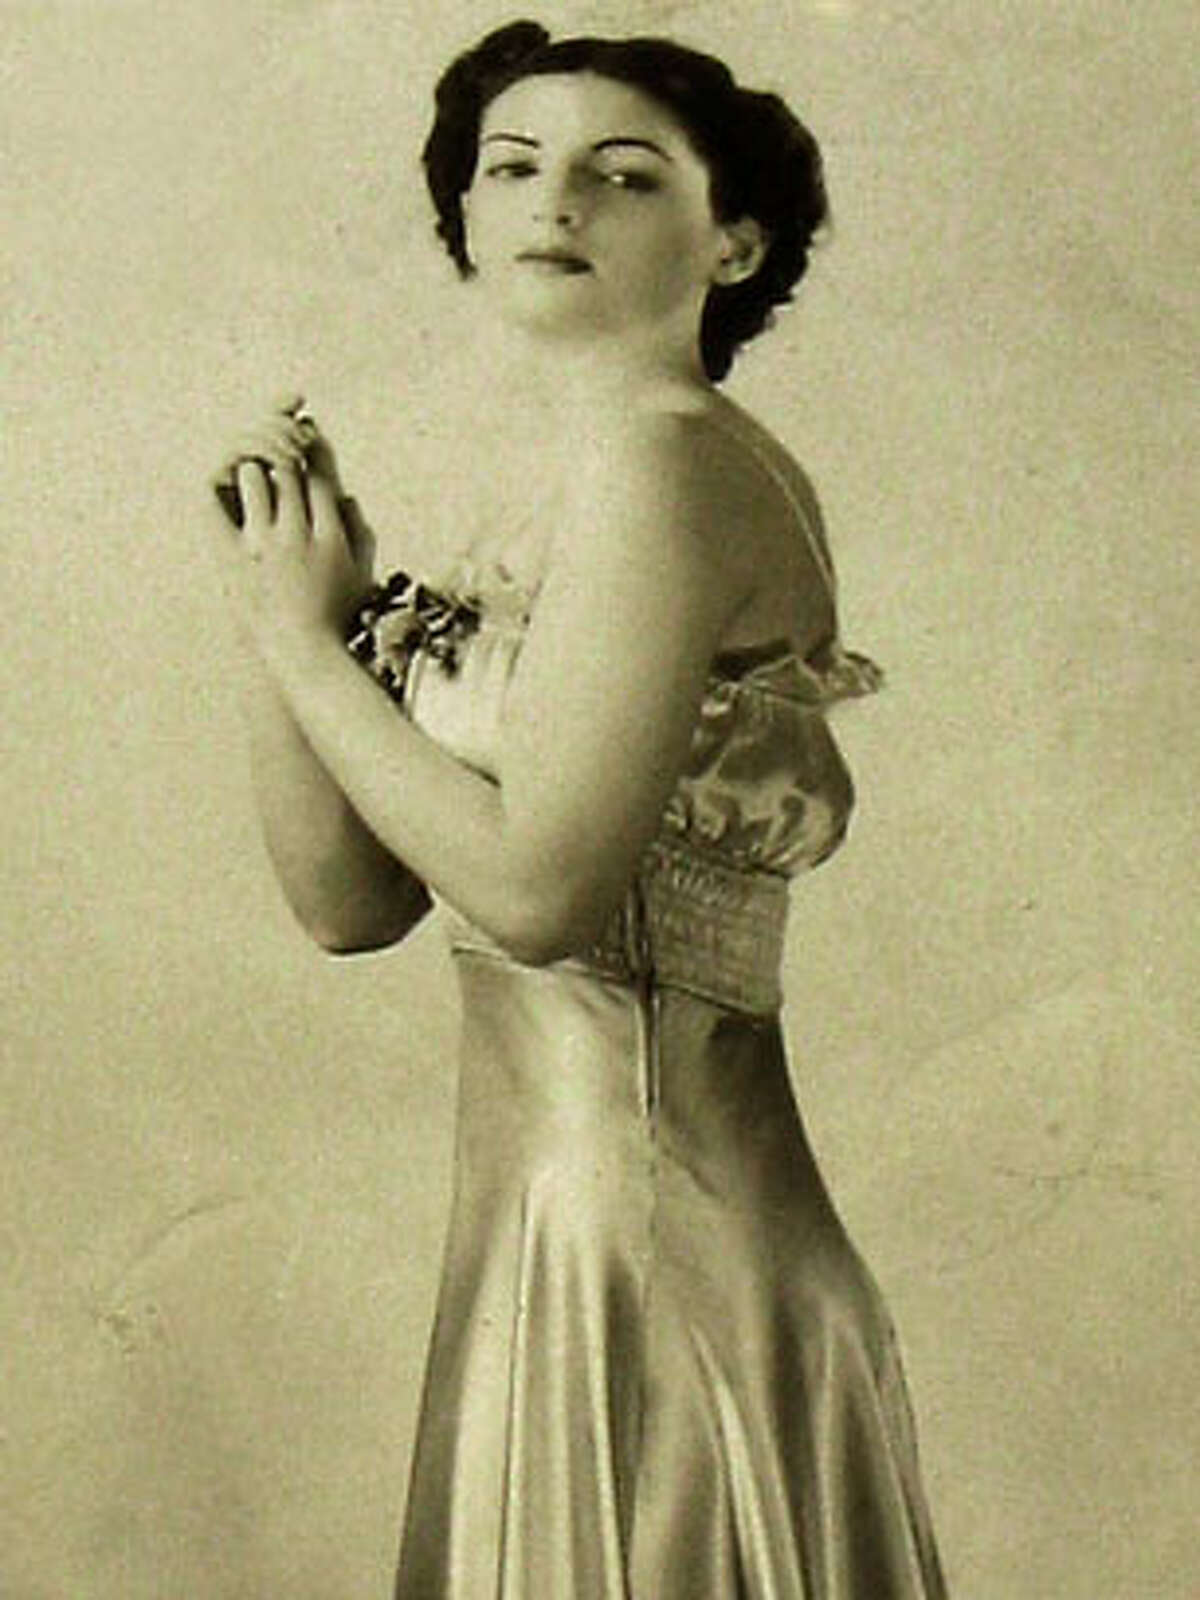 Photo of Esther Weintraub as a model, for obit of 89 yearold Jewish comic.